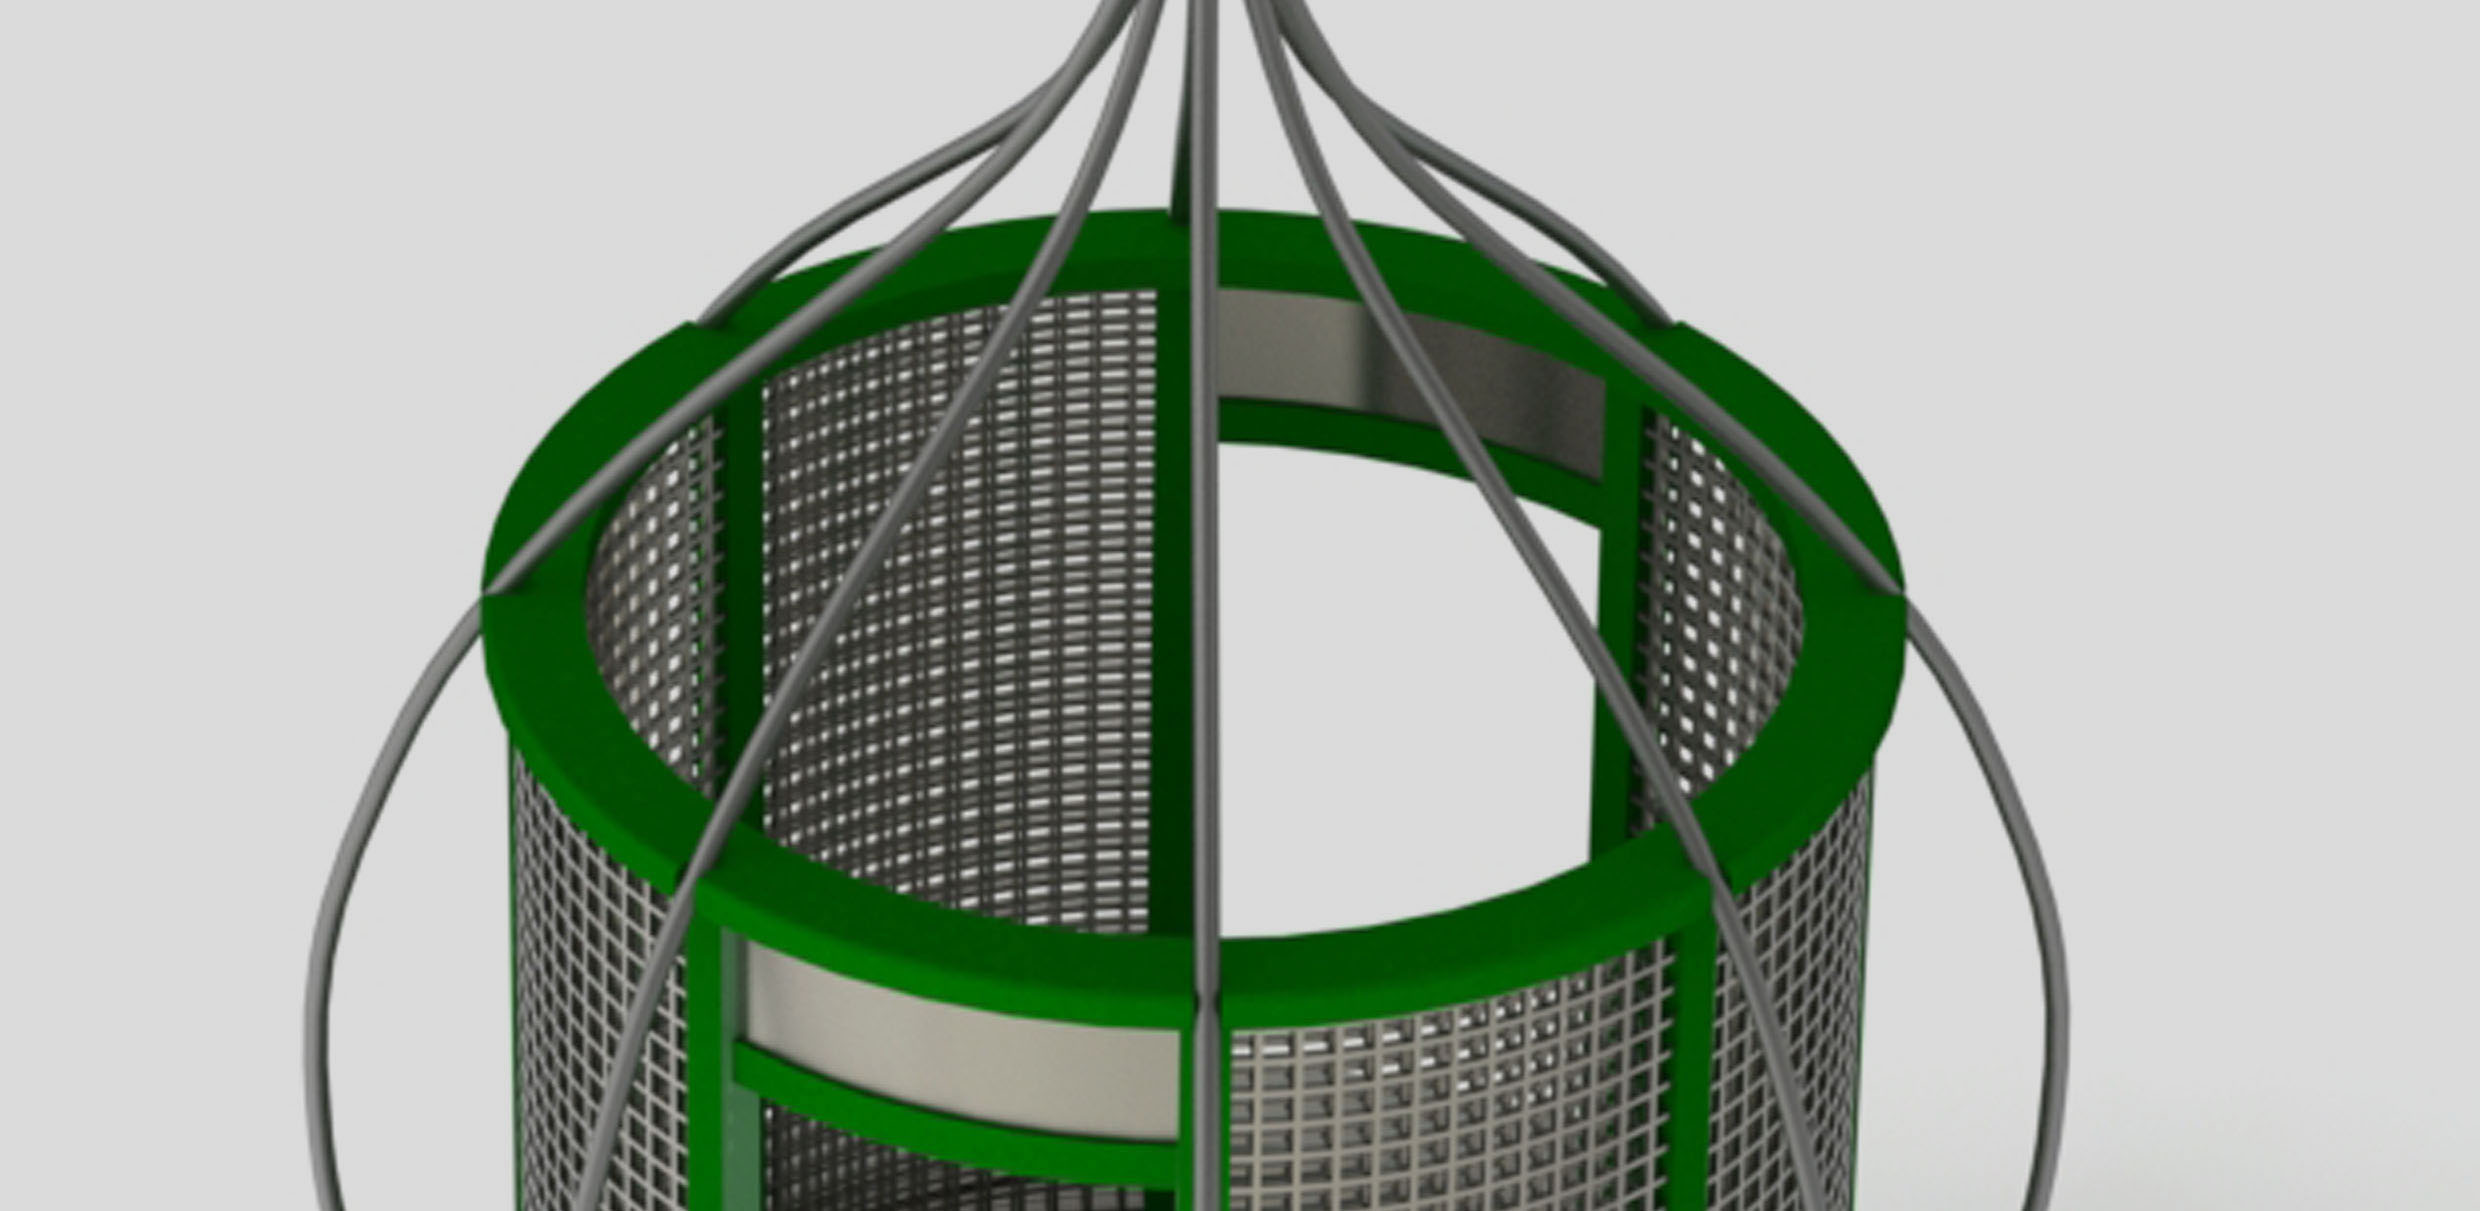 CAD model produced by Derby University